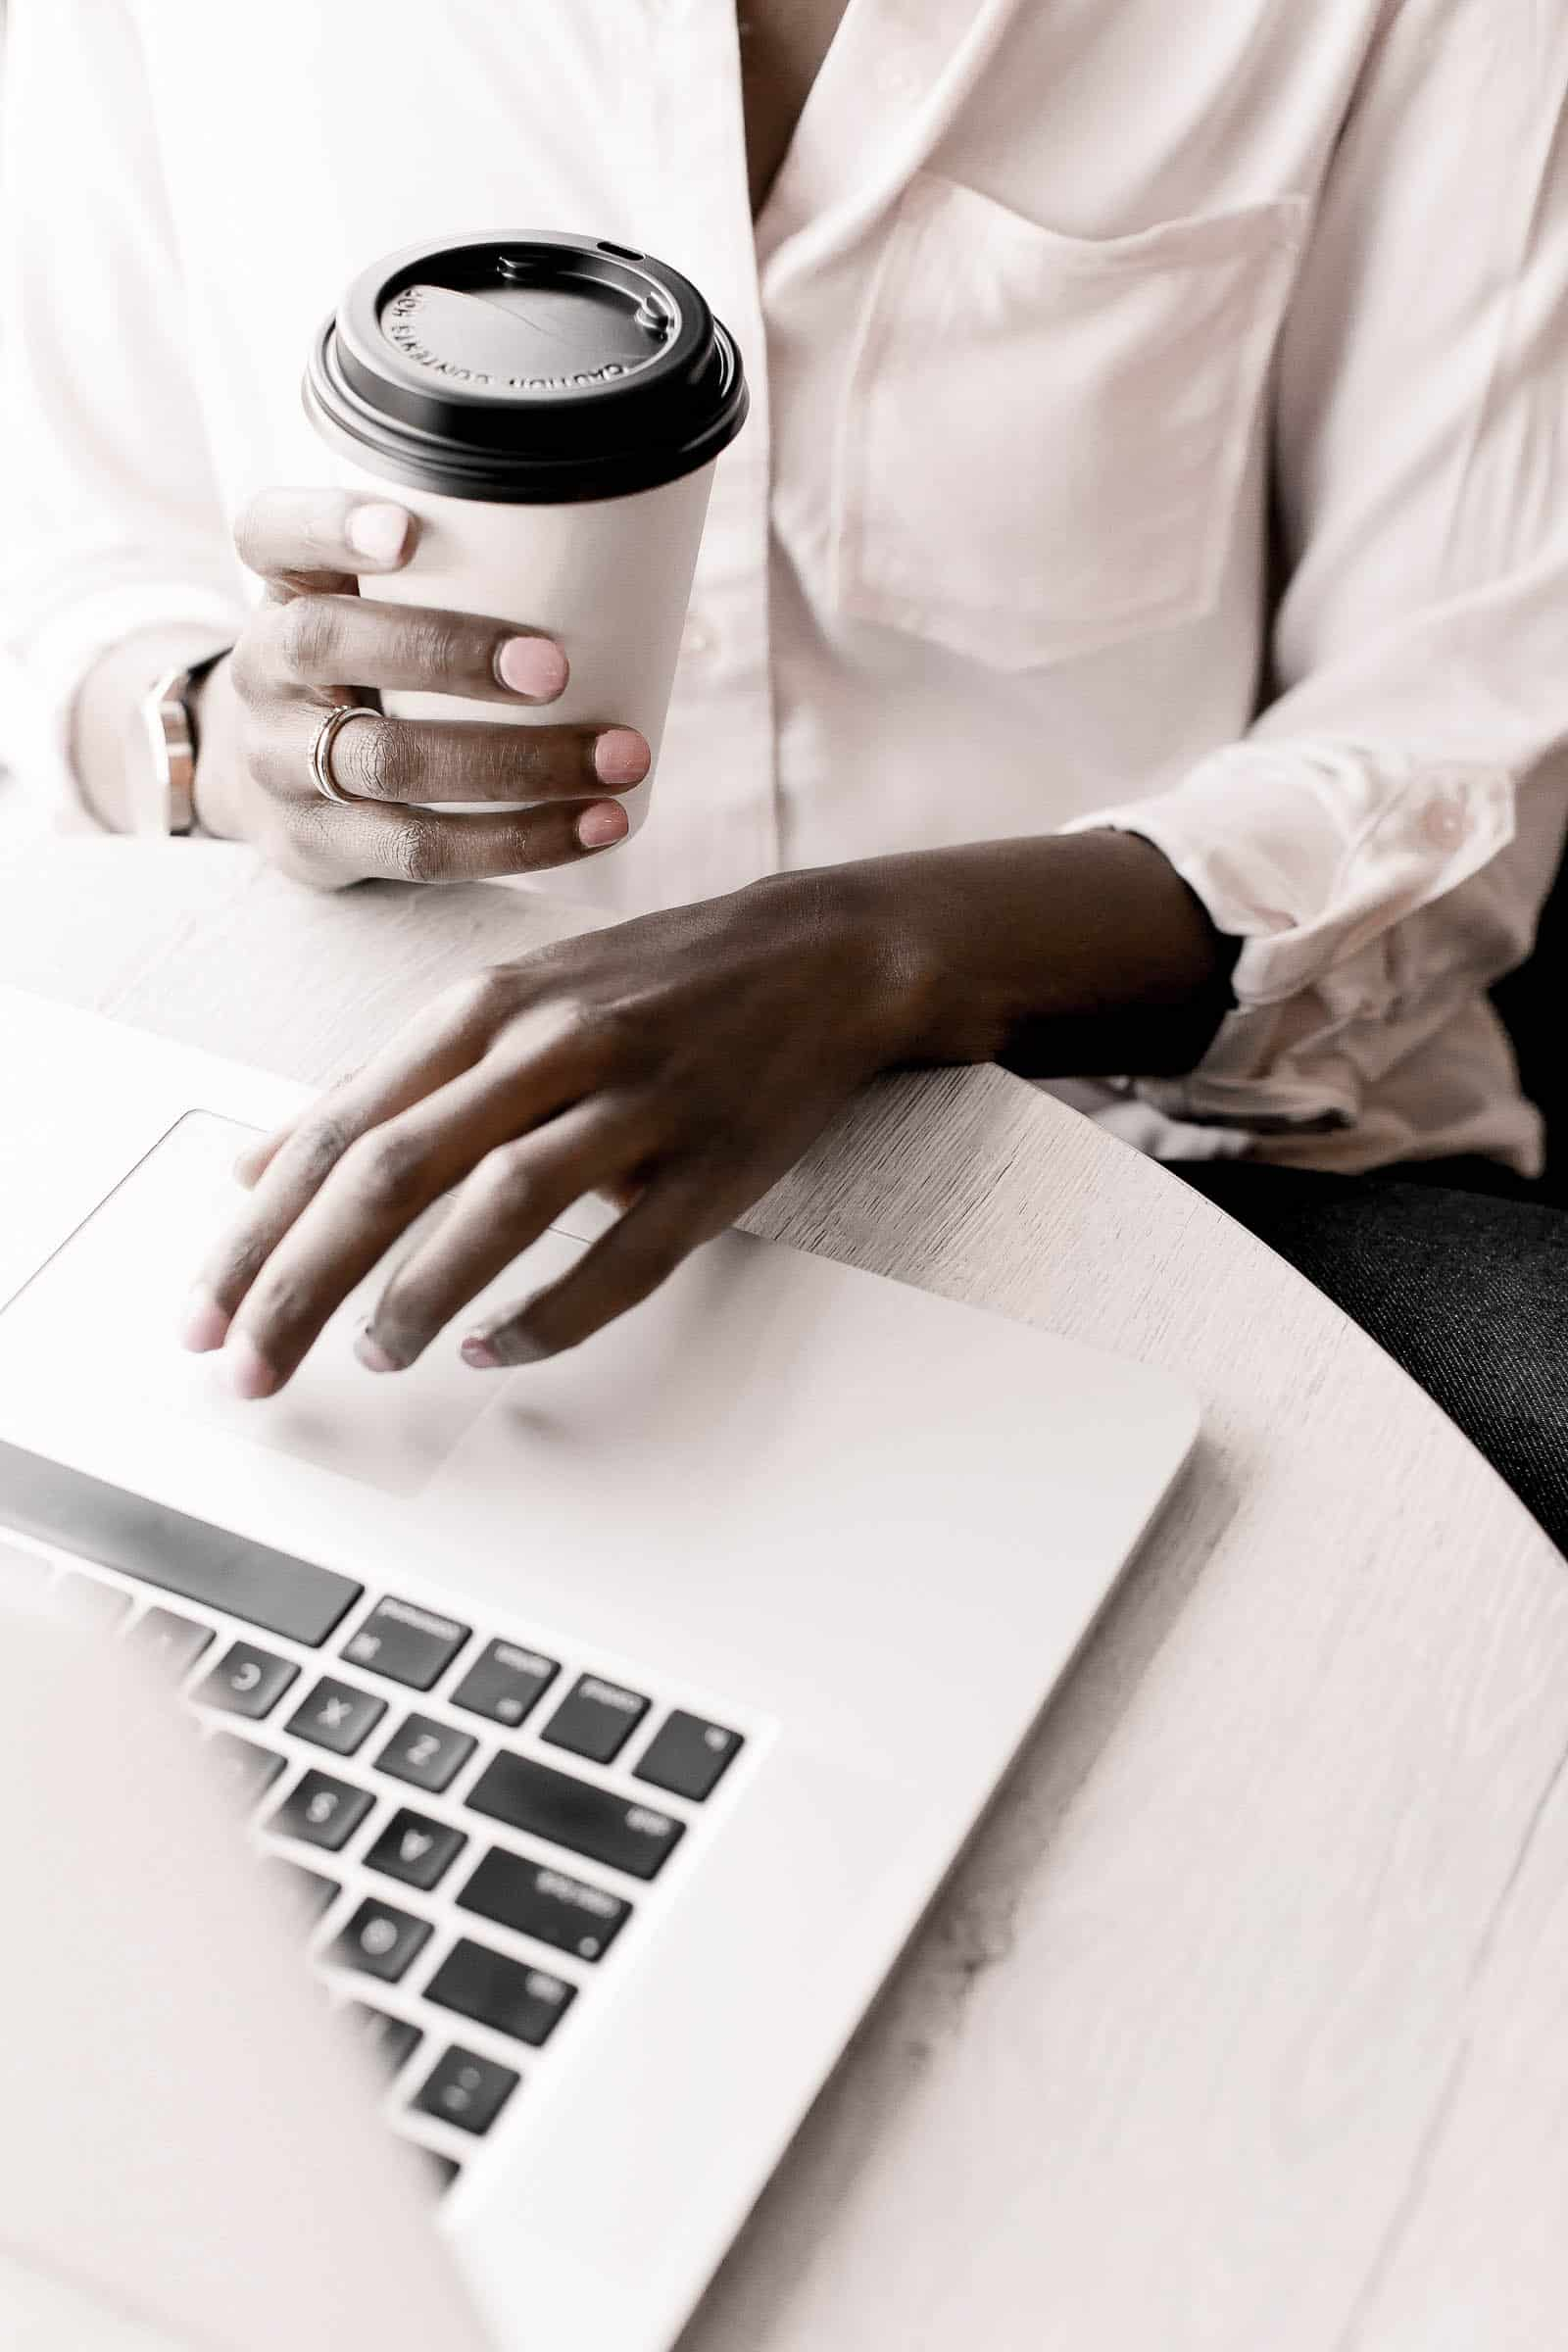 Woman with a coffee in her hand using a silver laptop on a white surface